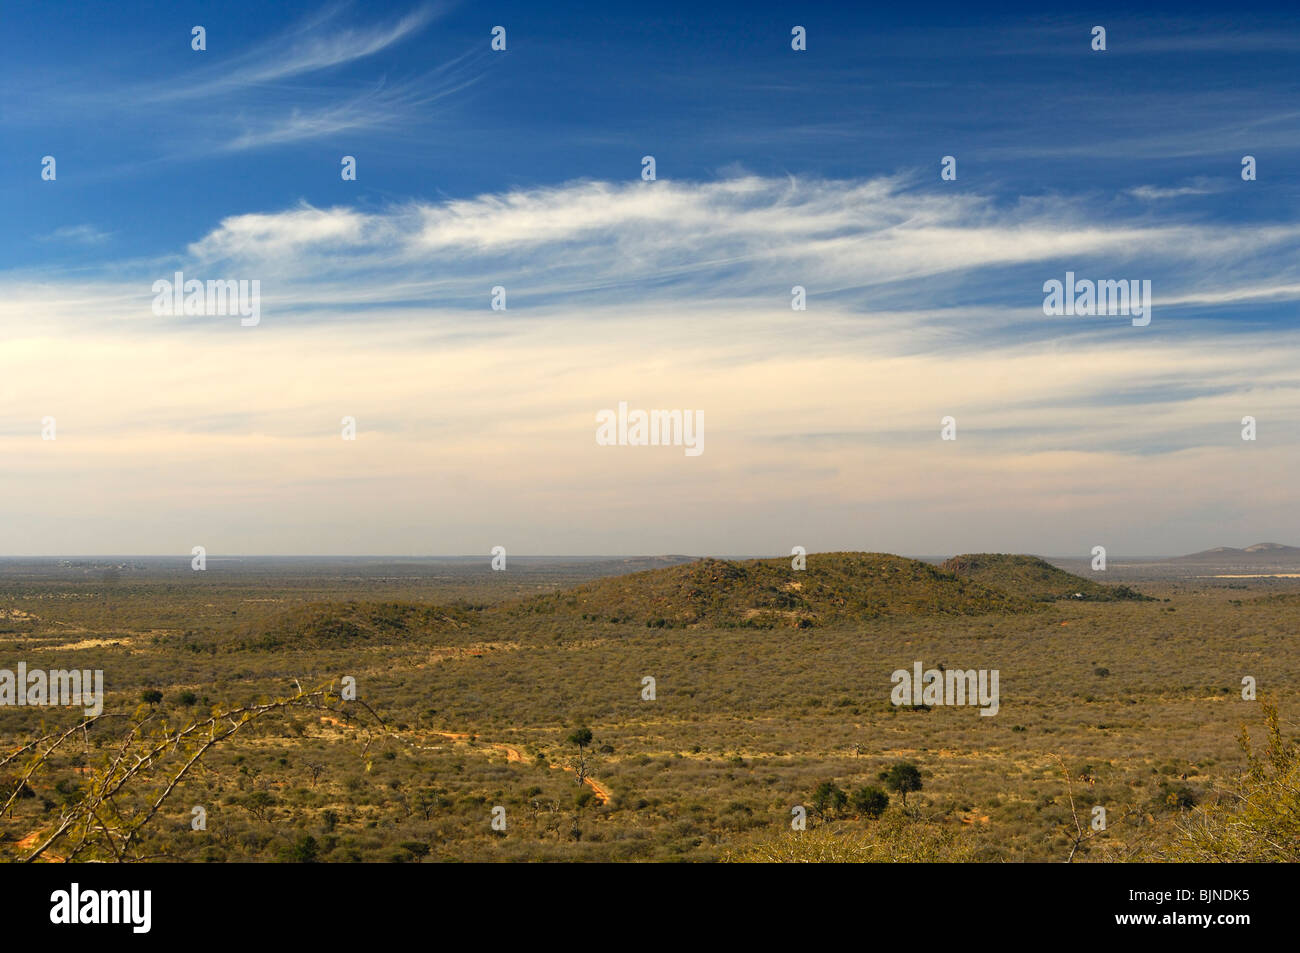 View across the vast African savannah landscape of the Madikwe Game Reserve, South Africa - Stock Image